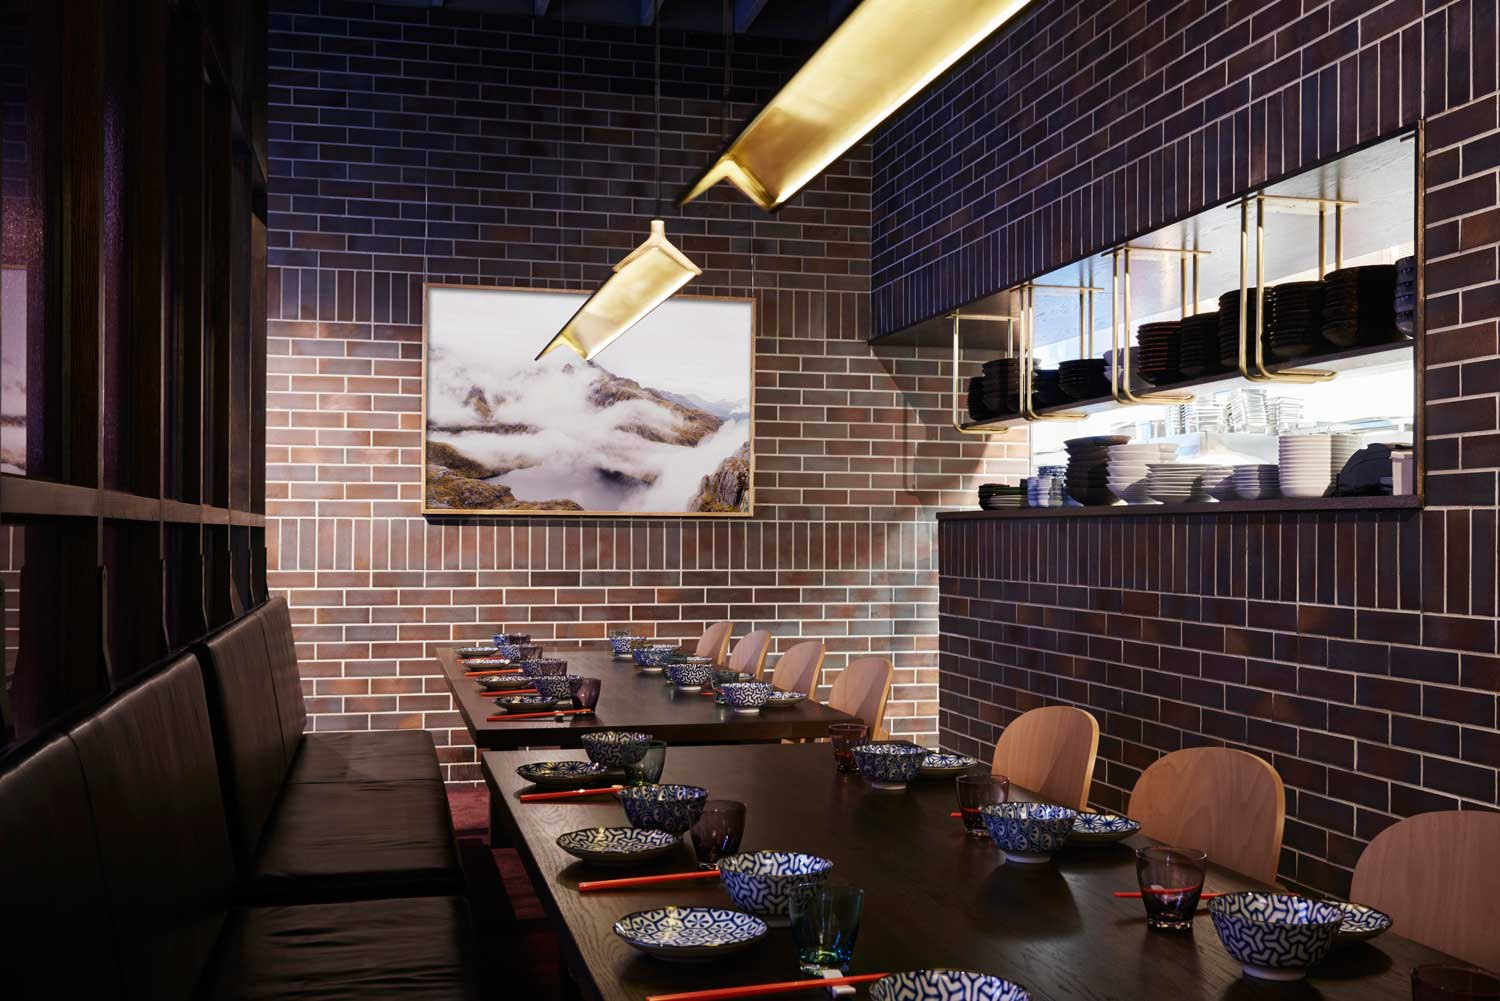 39 lee ho fook 39 modern chinese restaurant by techne for Design industry melbourne